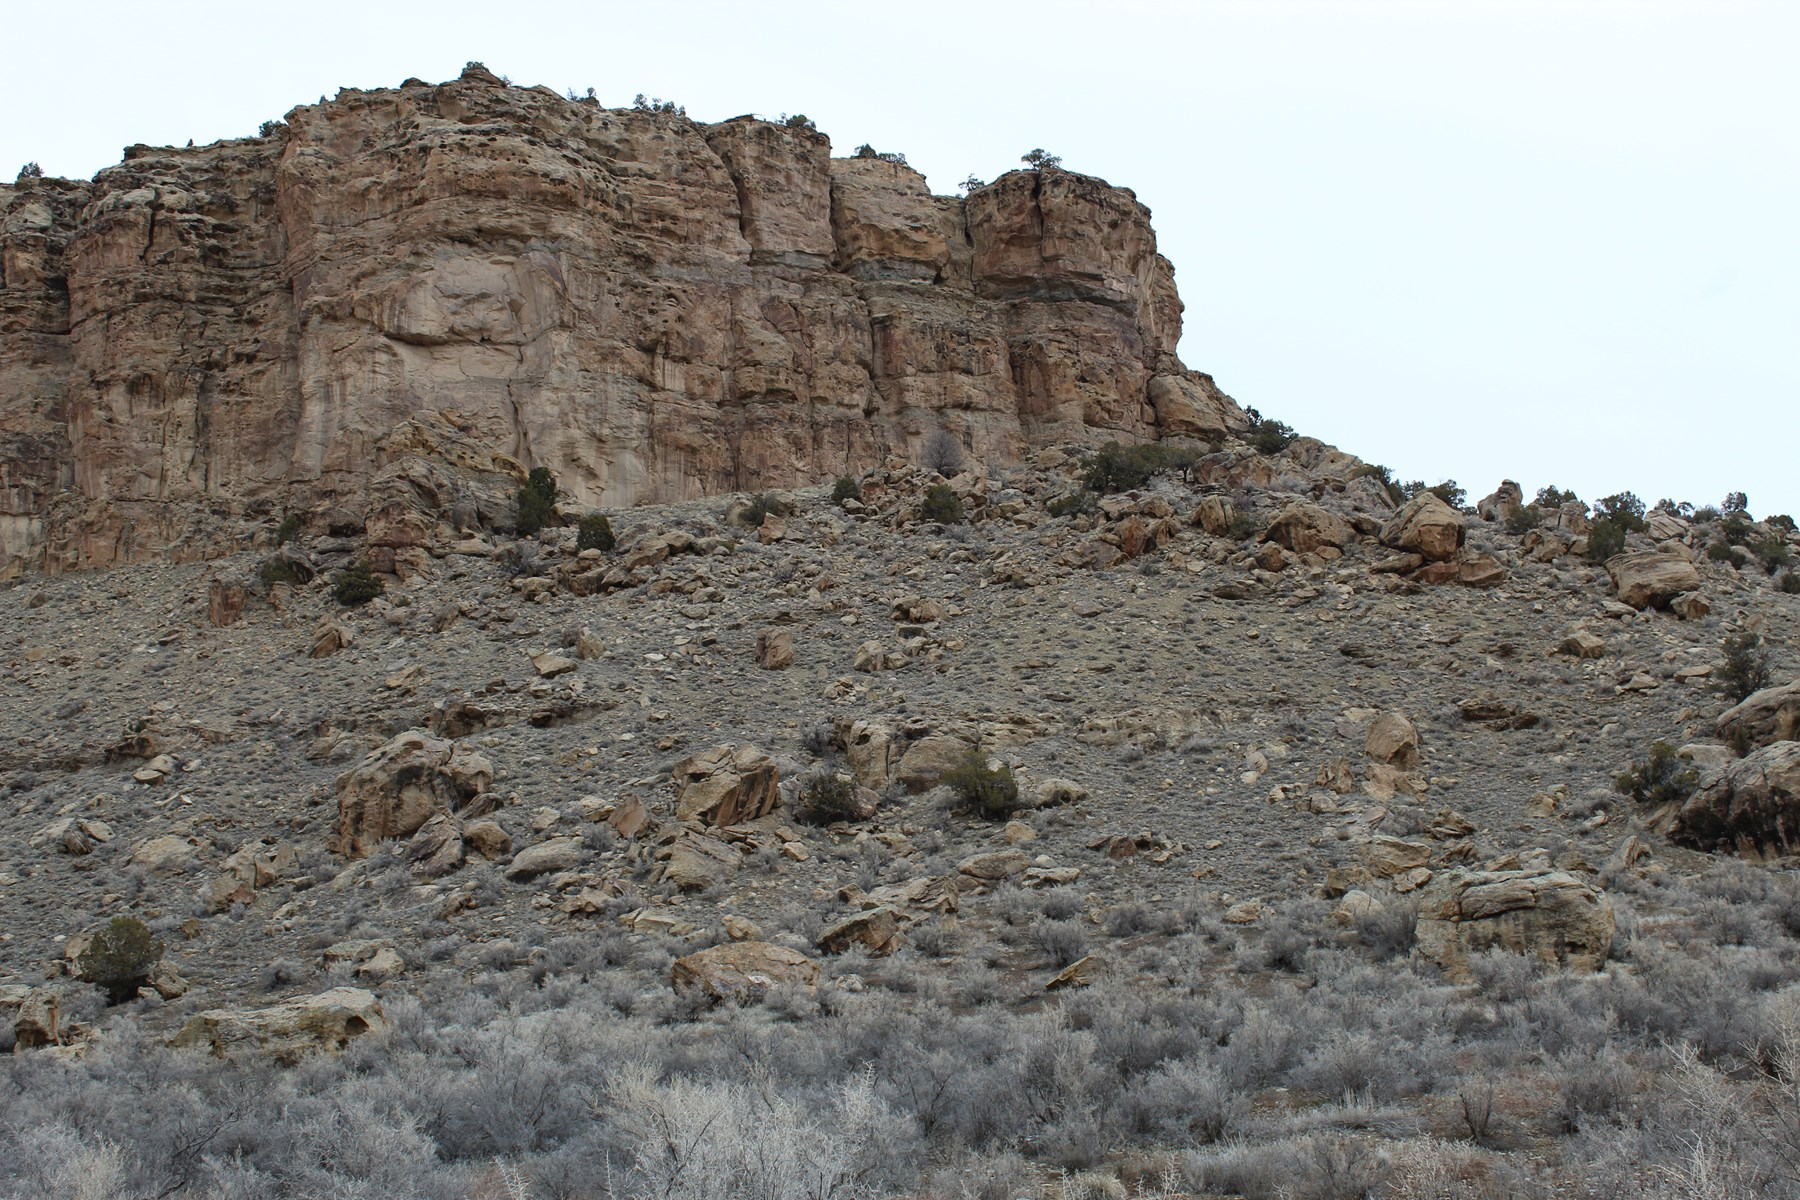 71.89 Acres of Colorado mountain land adjoining BLM.